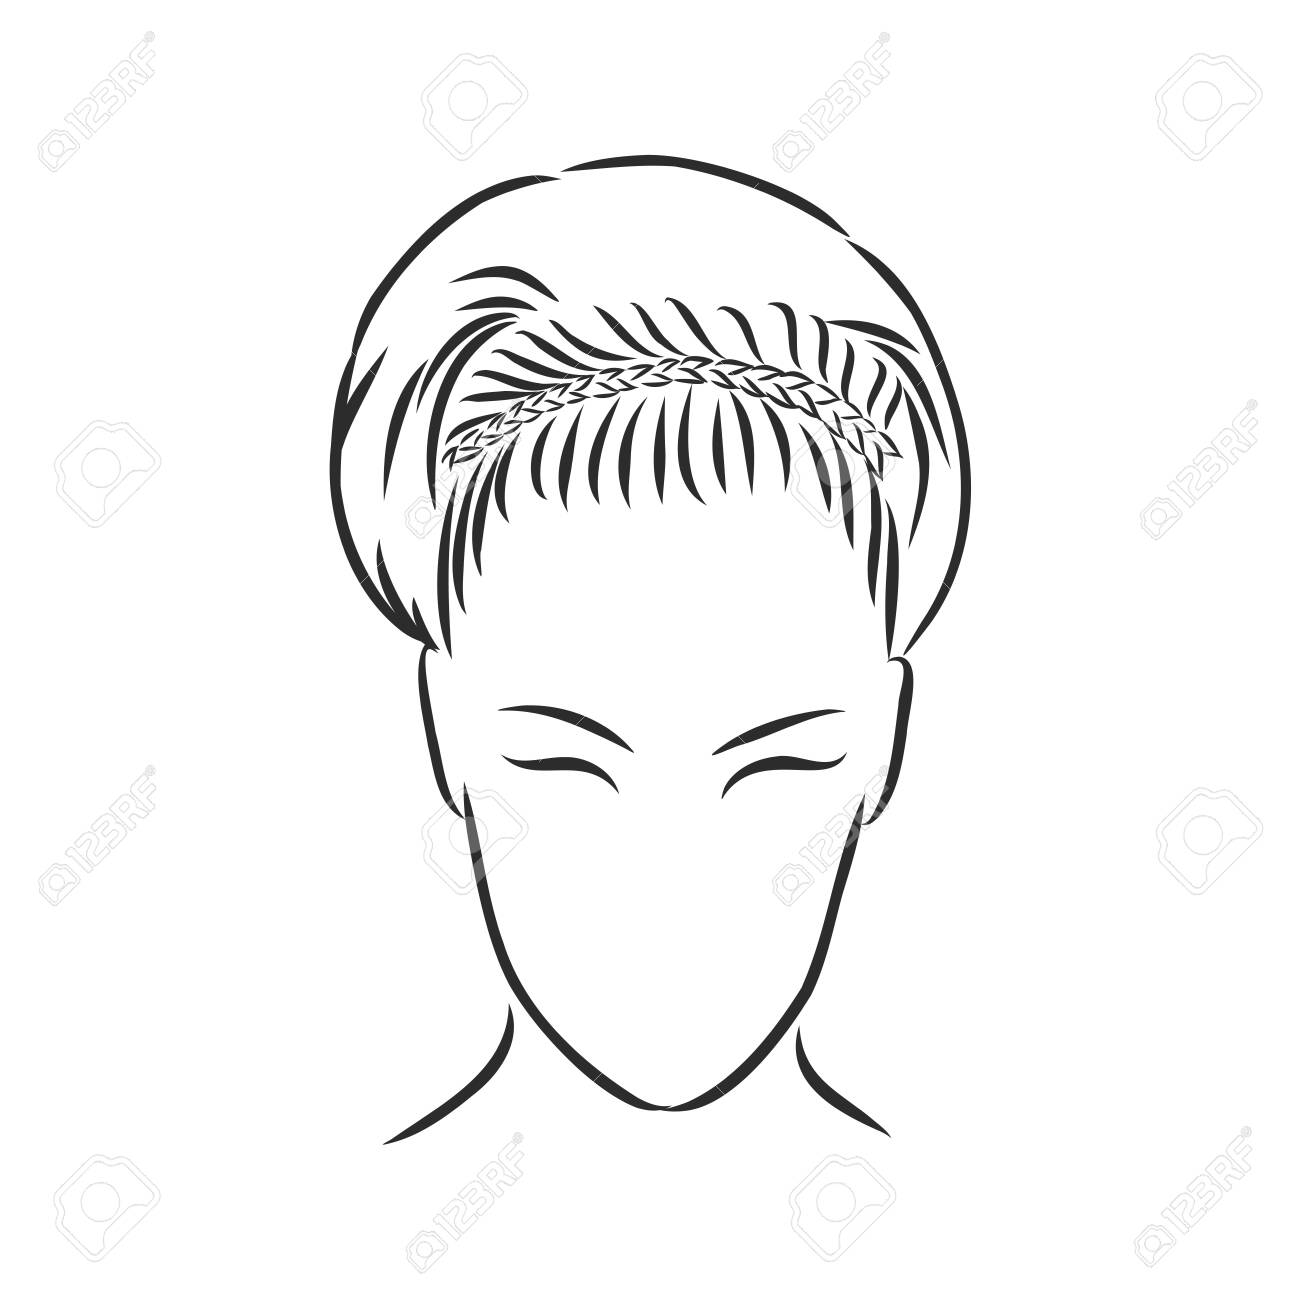 A sketch of a female hairstyle. A freehand vector illustration. - 137755111